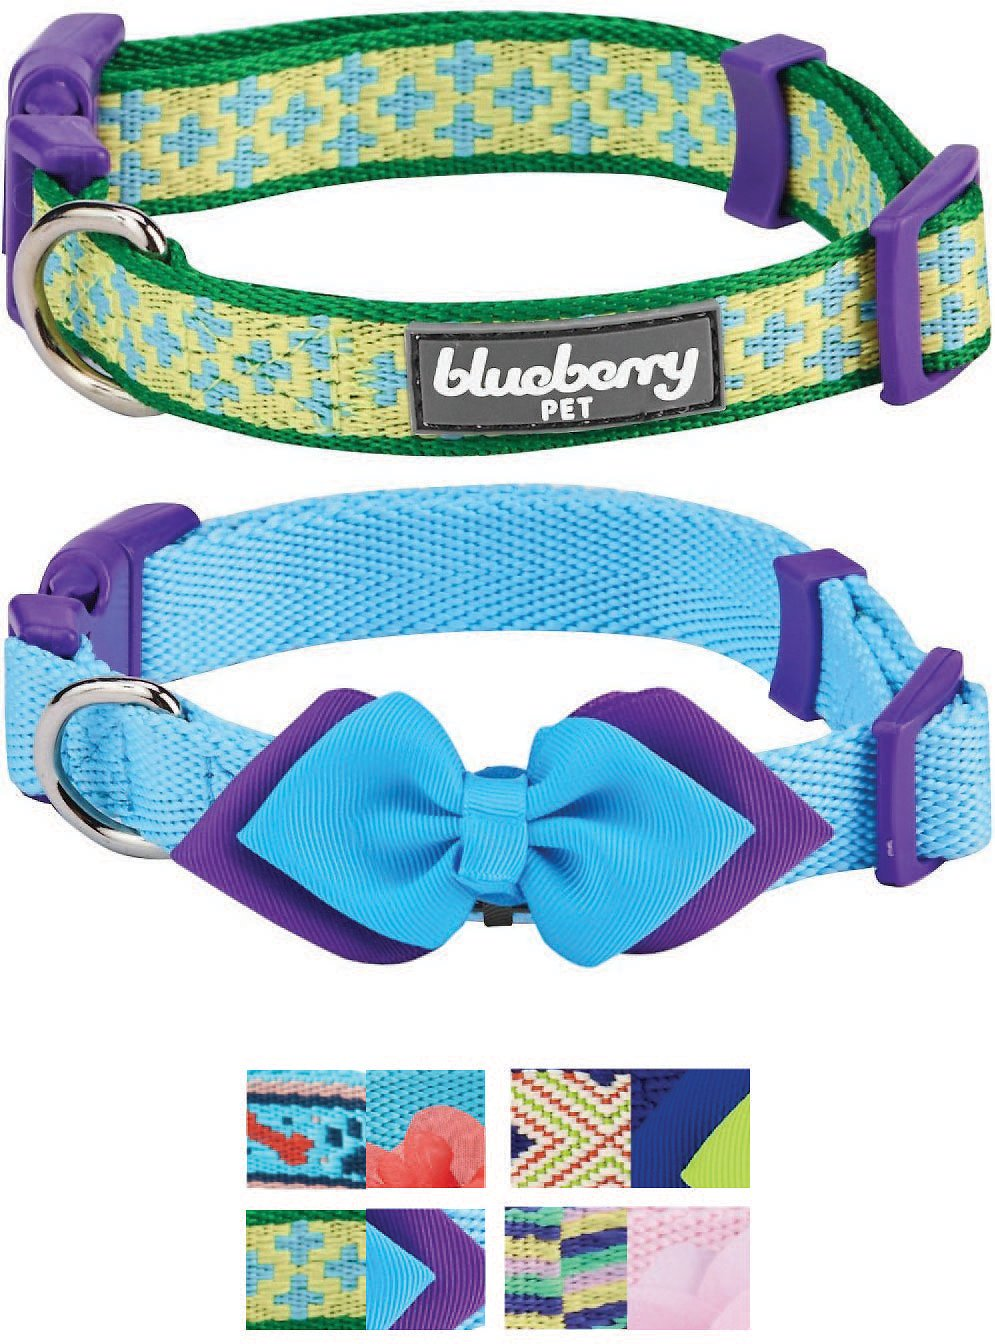 Blueberry Pet Mix And Match Dog Collar Uptown Chic 2 Pack Small